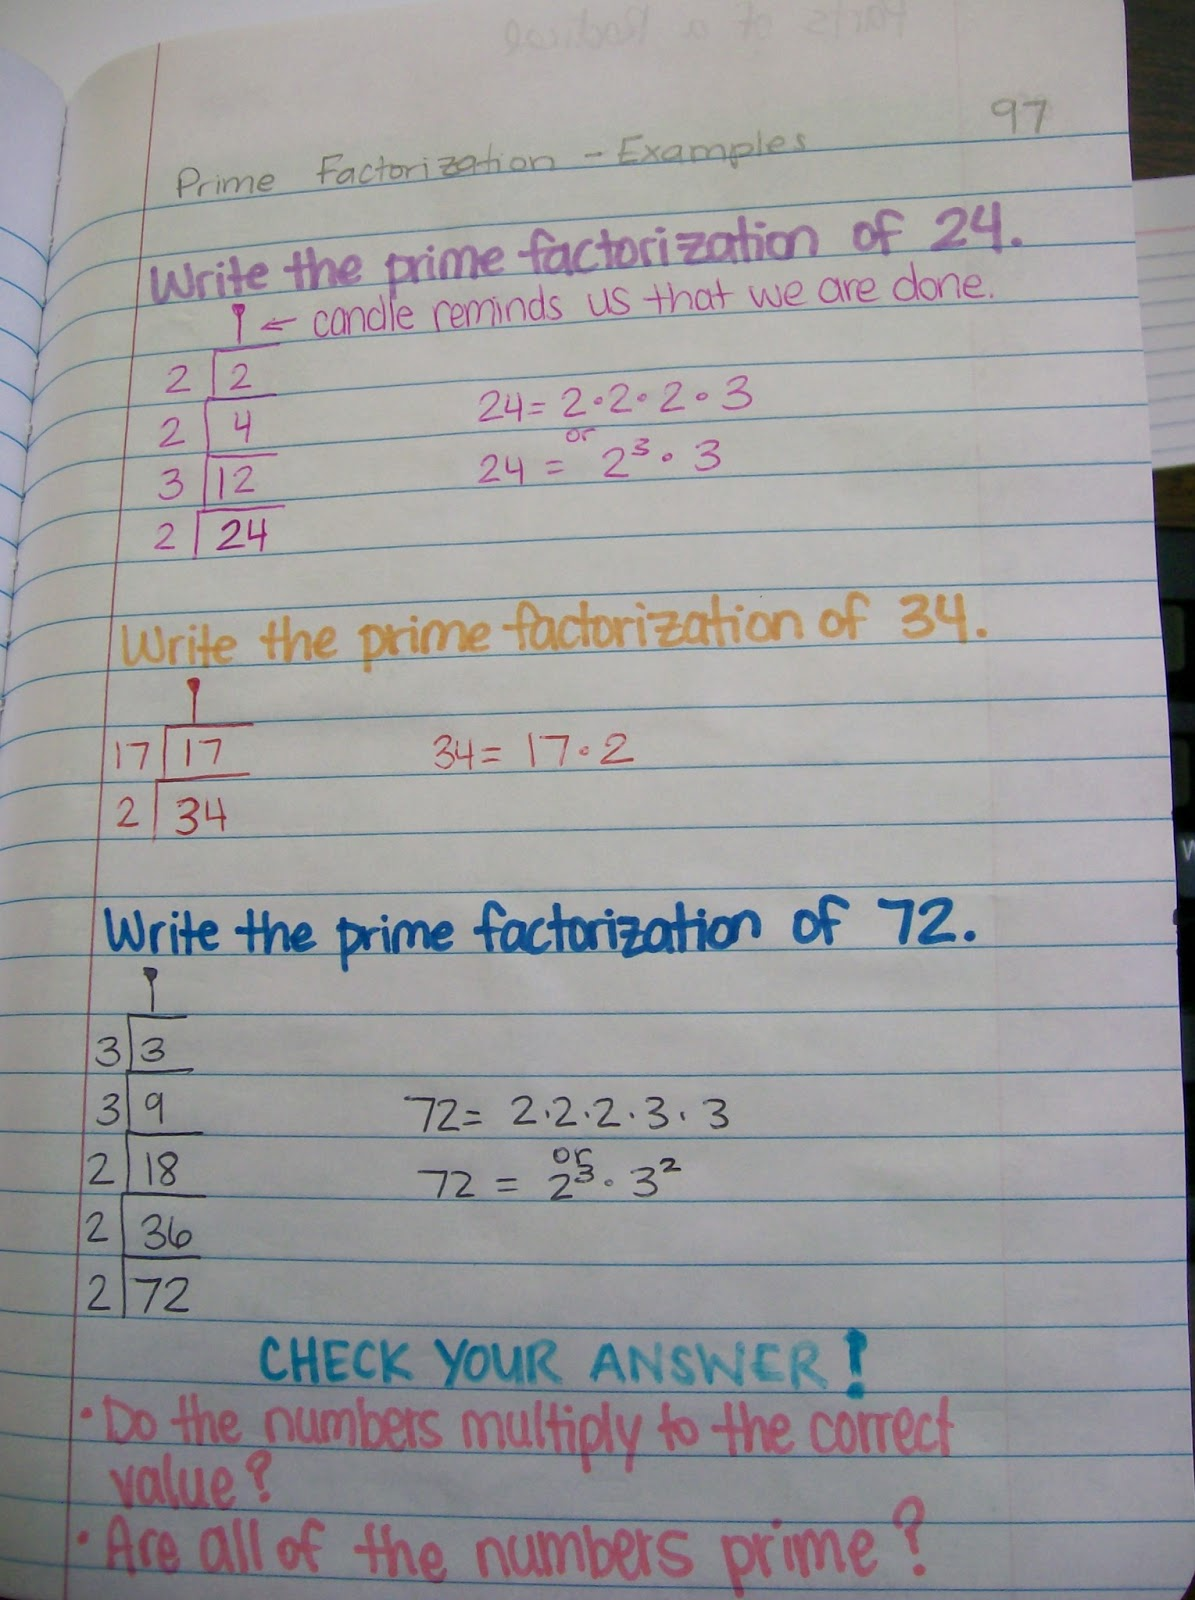 Birthday Cake Method For Prime Factorization